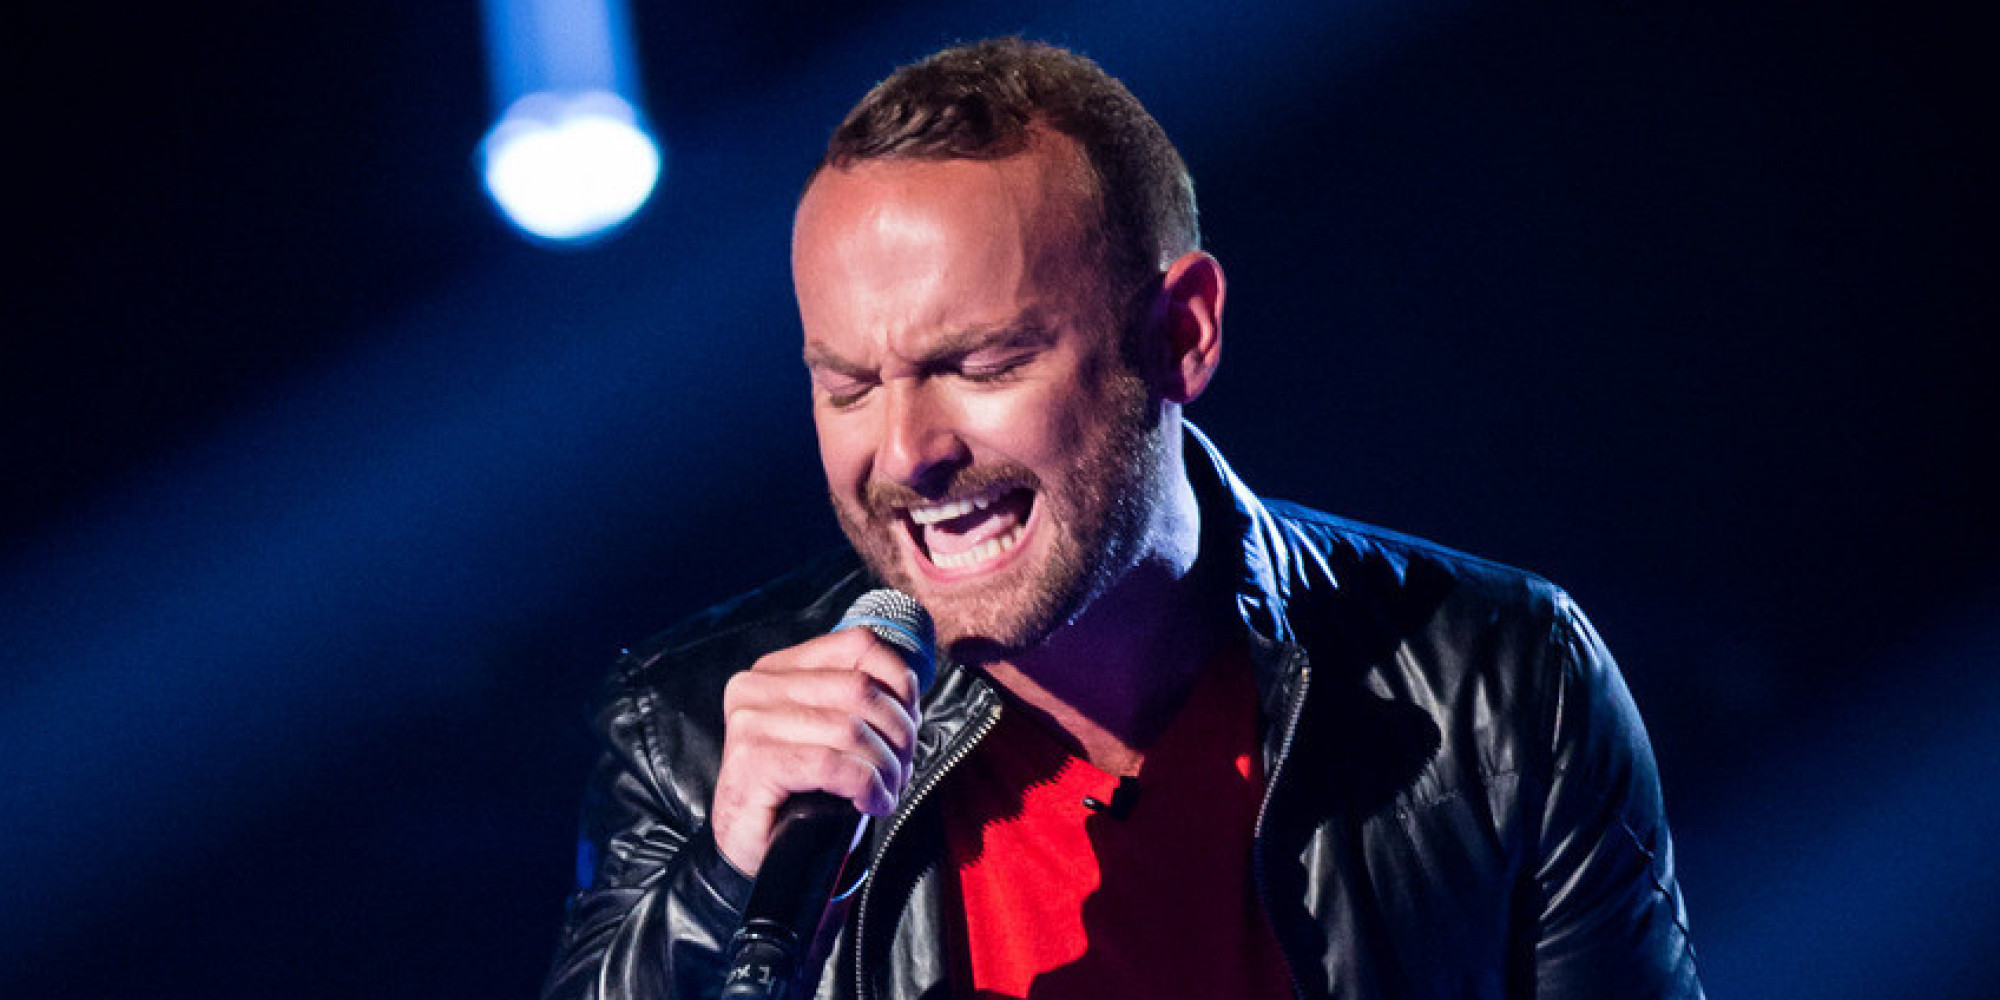 The Voice' UK: Former Liberty X Singer Kevin Simm Auditions For The ...